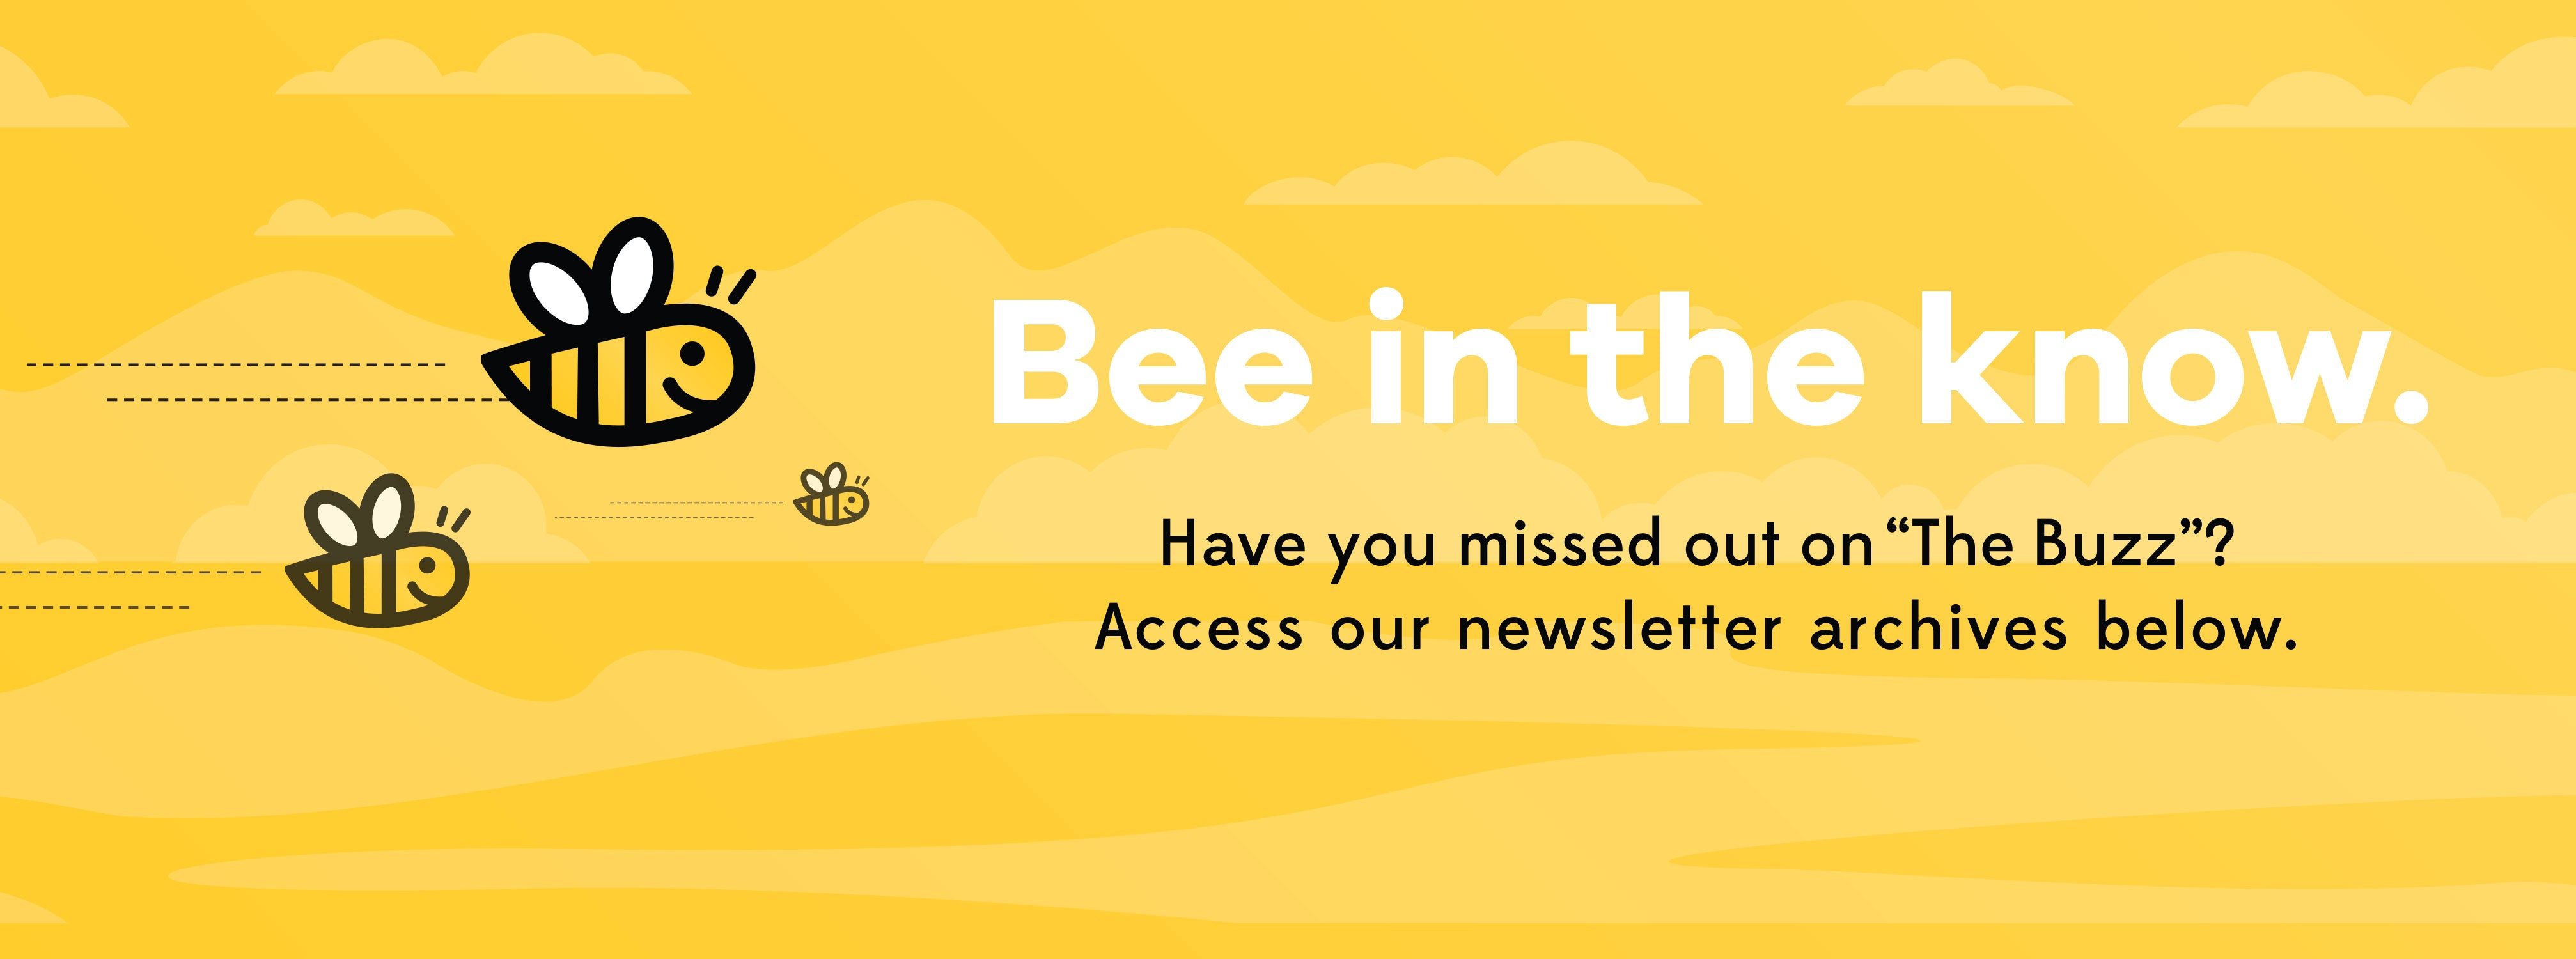 Bee in the Know Newsletter banner